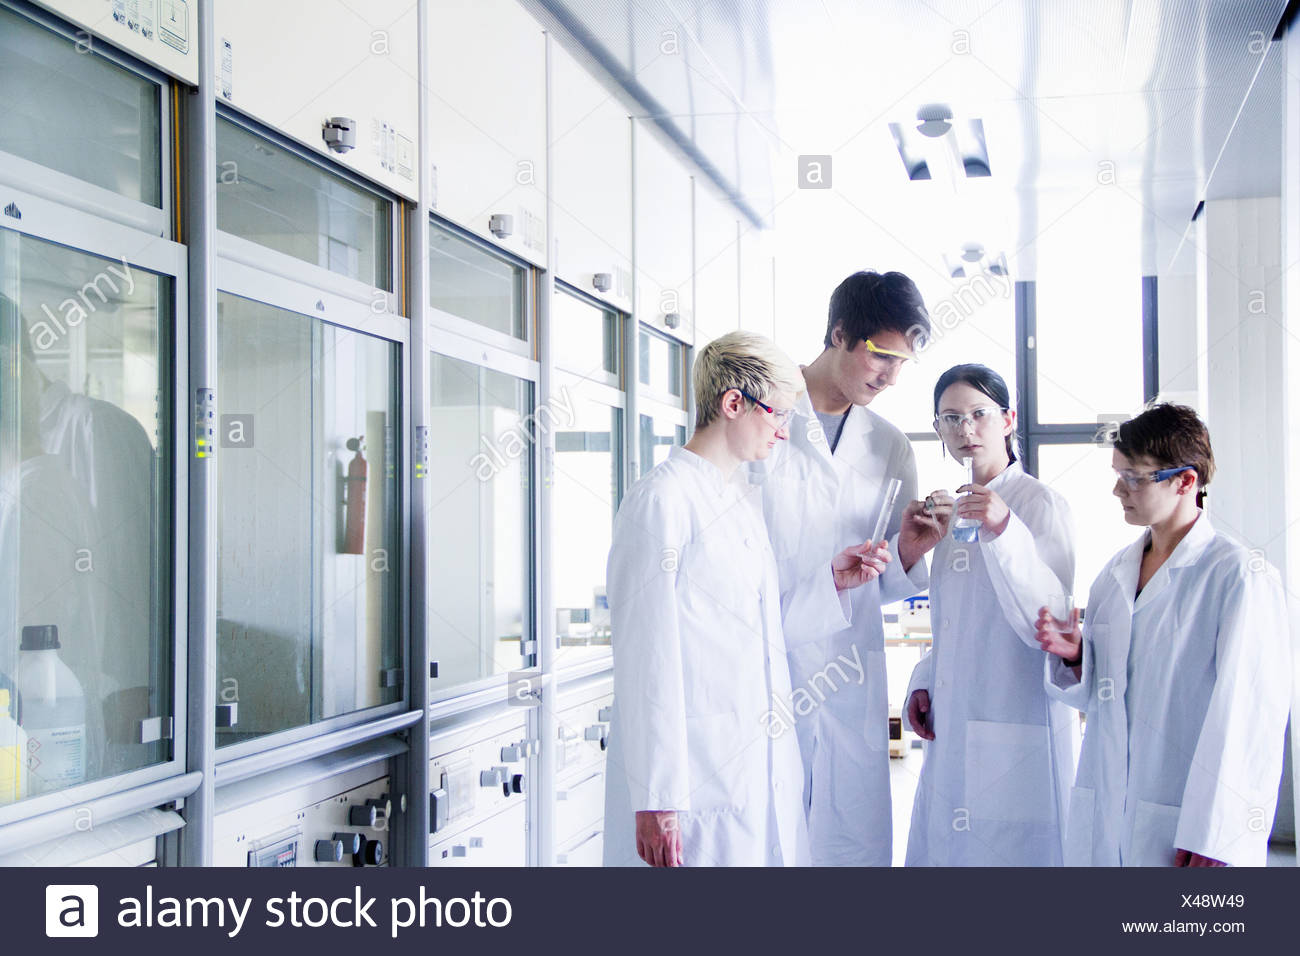 Chemistry students looking at chemicals in laboratory - Stock Image